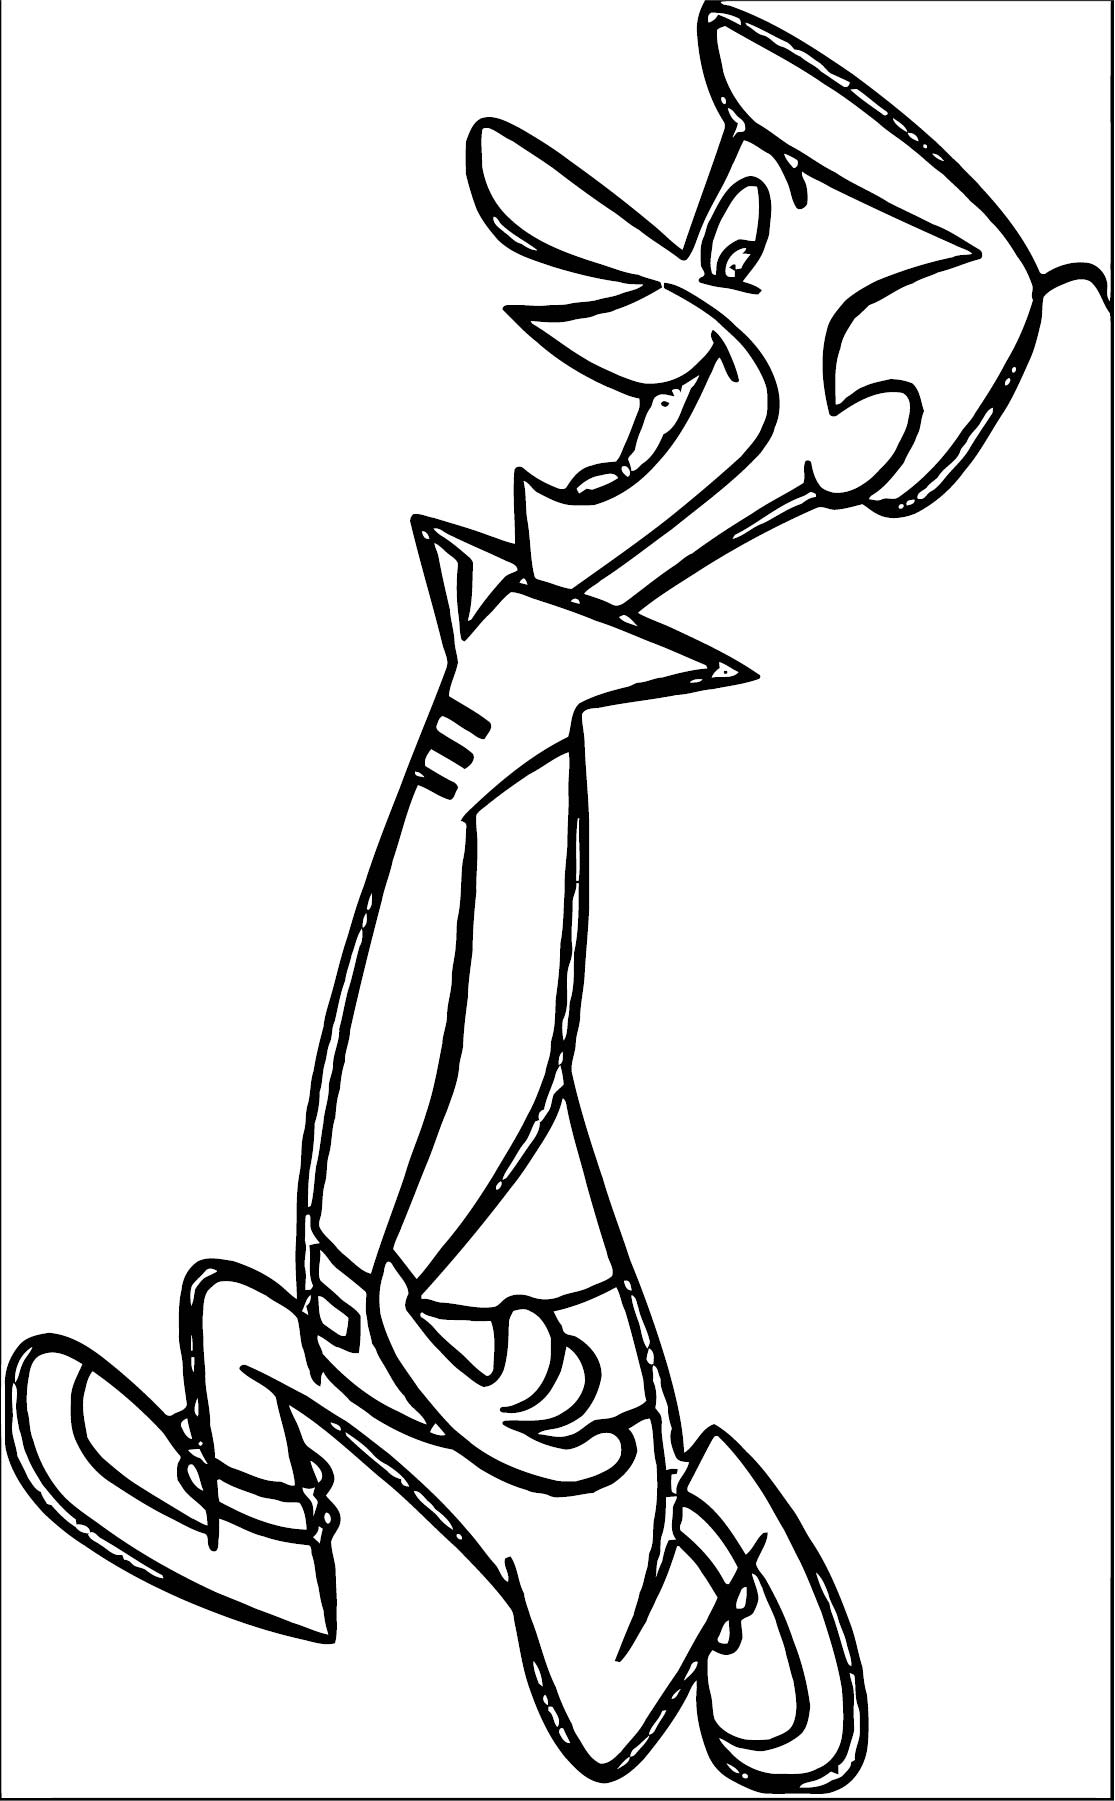 Jetsons Coloring Page 3